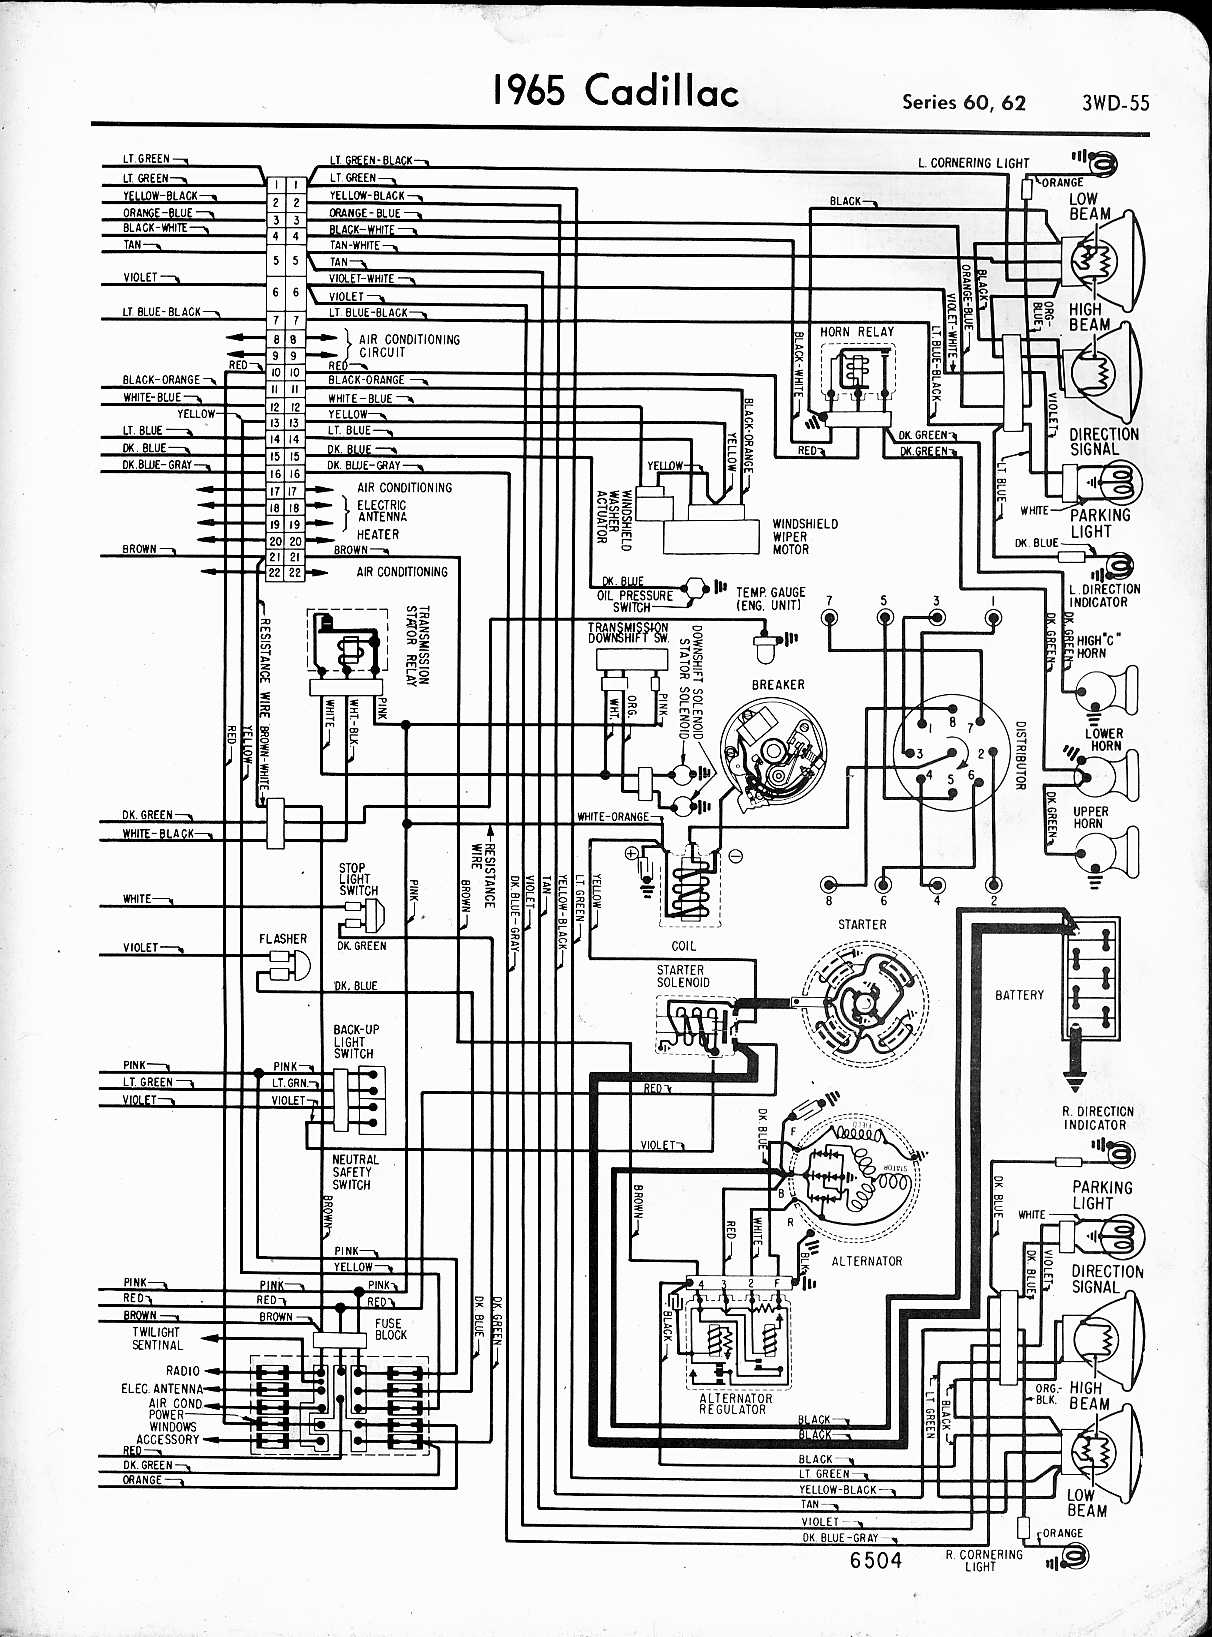 68 cadillac wiring diagram free picture schematic electrical rh universalservices co 2000 Cadillac Eldorado Wiring Diagrams 2000 Cadillac Eldorado Wiring Diagrams